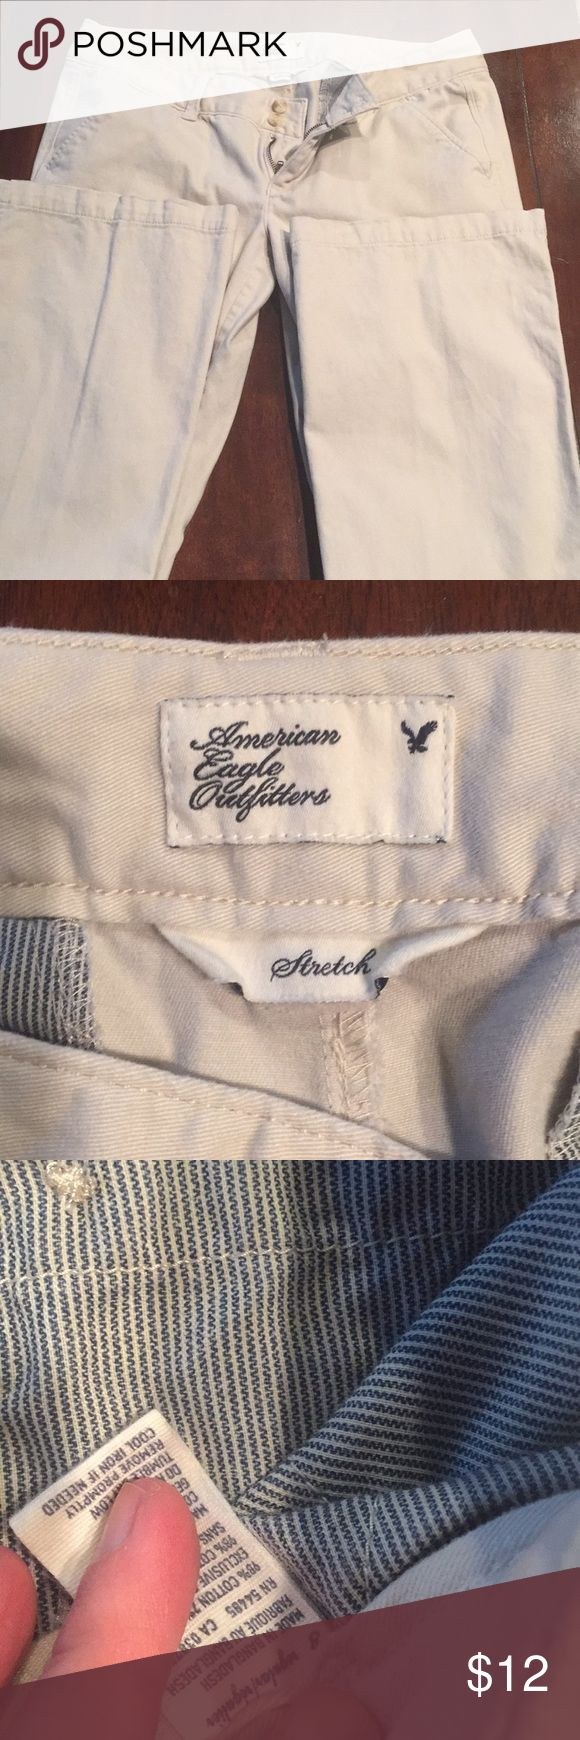 American Eagle 🦅 khaki pants Excellent condition just don't fit anymore. They are super soft from smoke free home. American Eagle Outfitters Pants Boot Cut & Flare